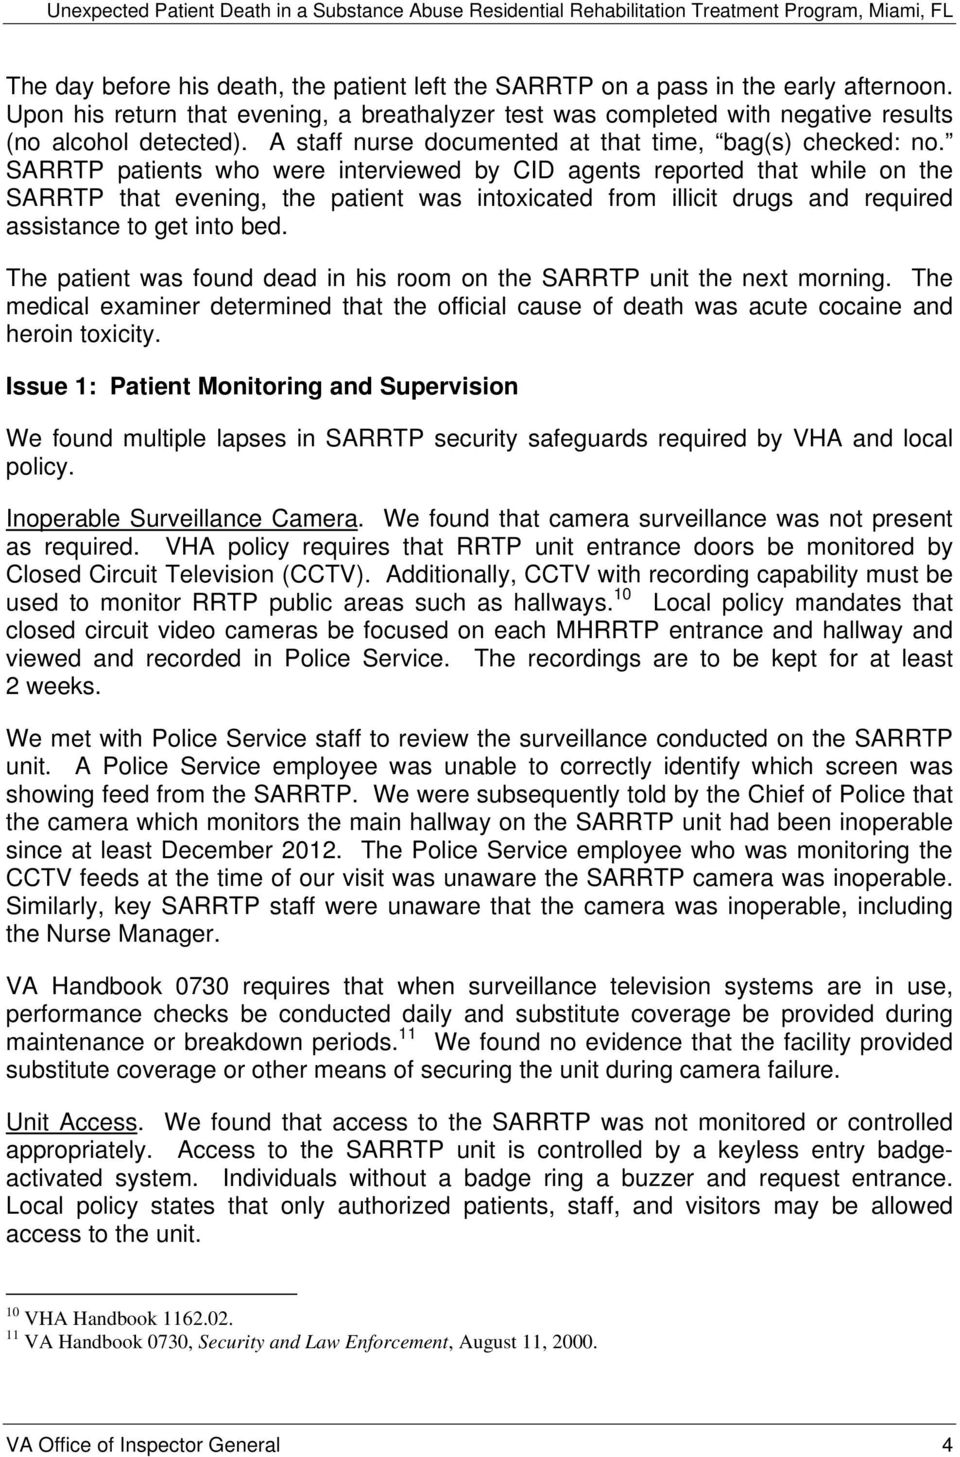 SARRTP patients who were interviewed by CID agents reported that while on the SARRTP that evening, the patient was intoxicated from illicit drugs and required assistance to get into bed.